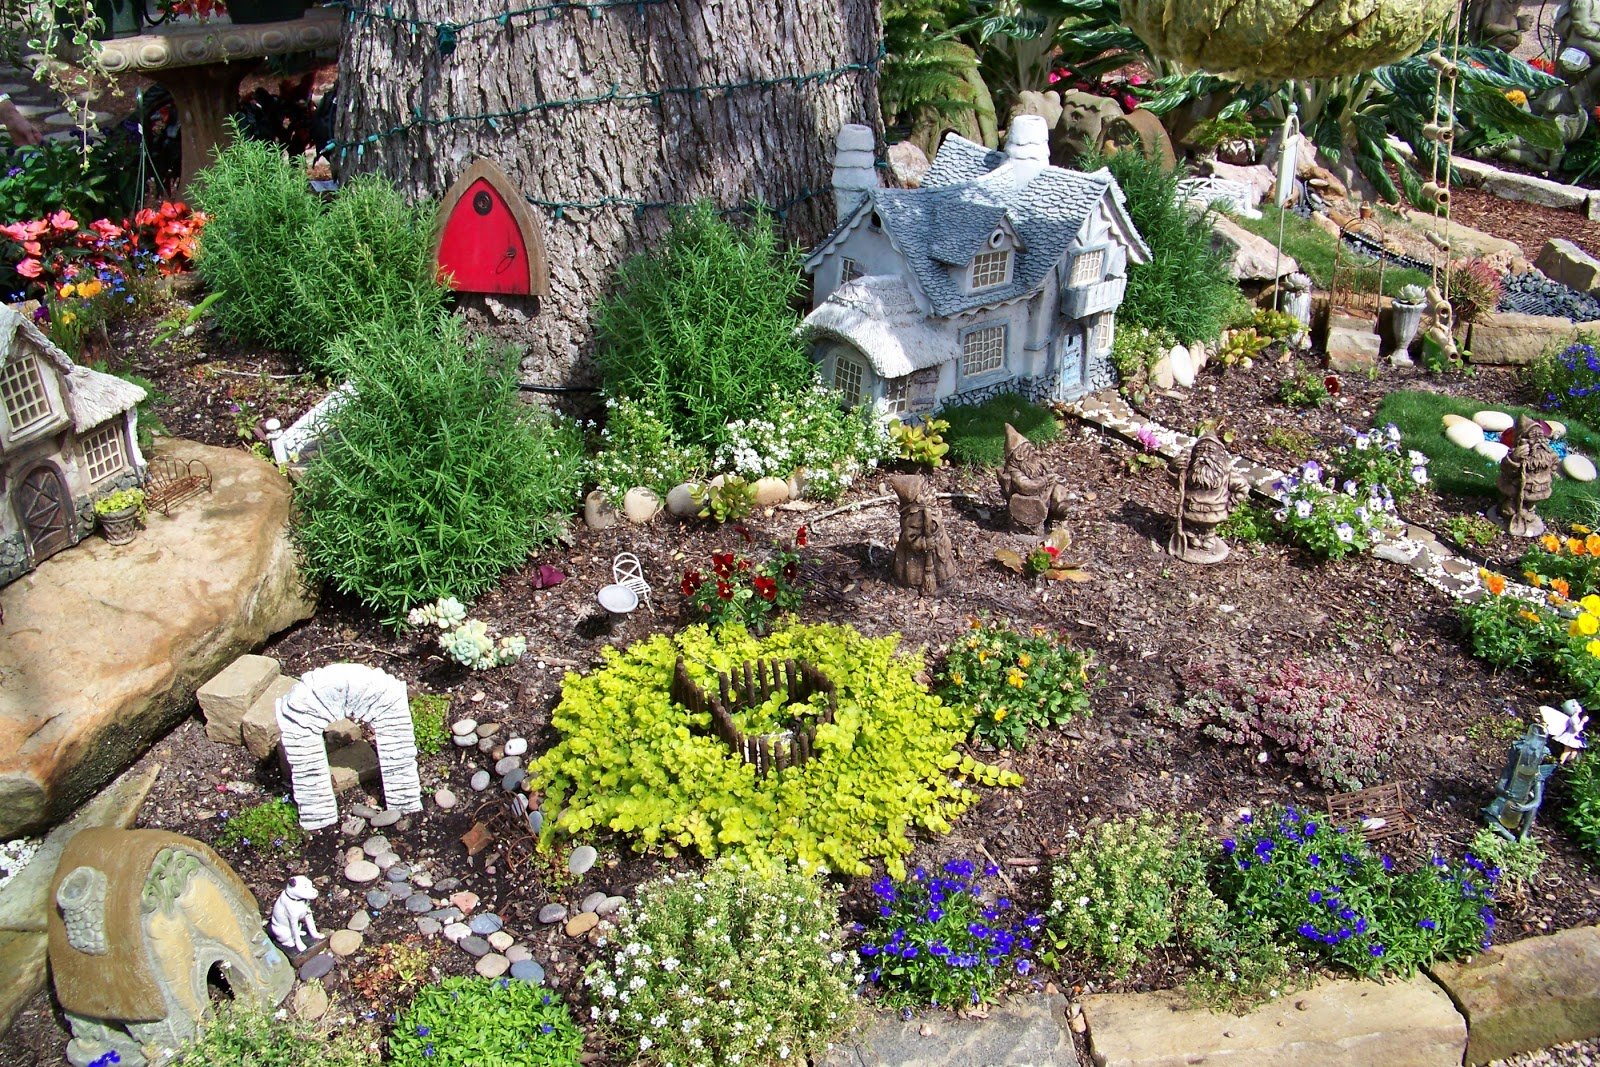 Enchanted Garden: My Heart Lives Here